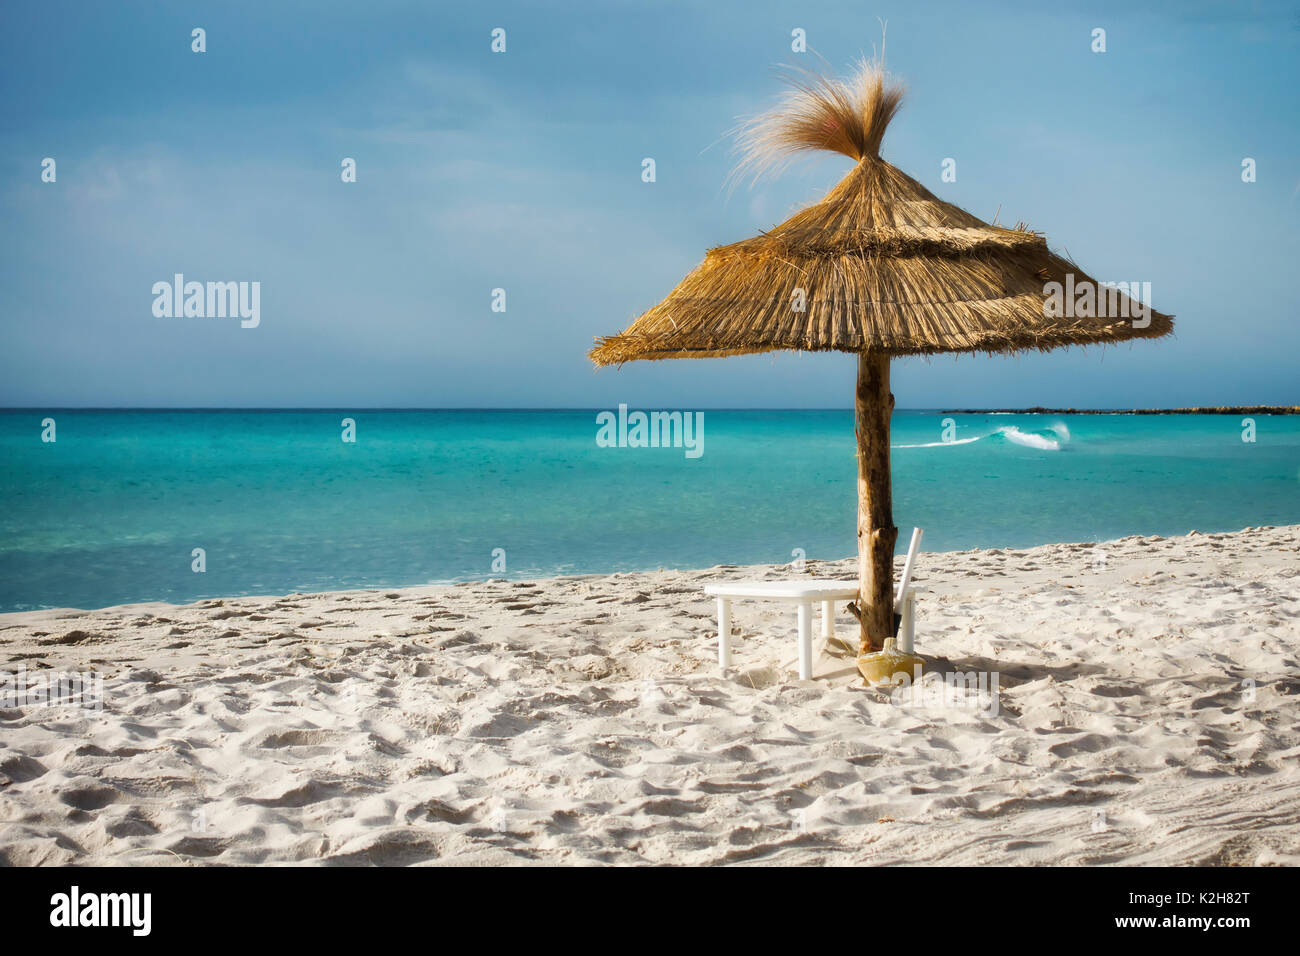 tropical beach and turquoise sea - Stock Image